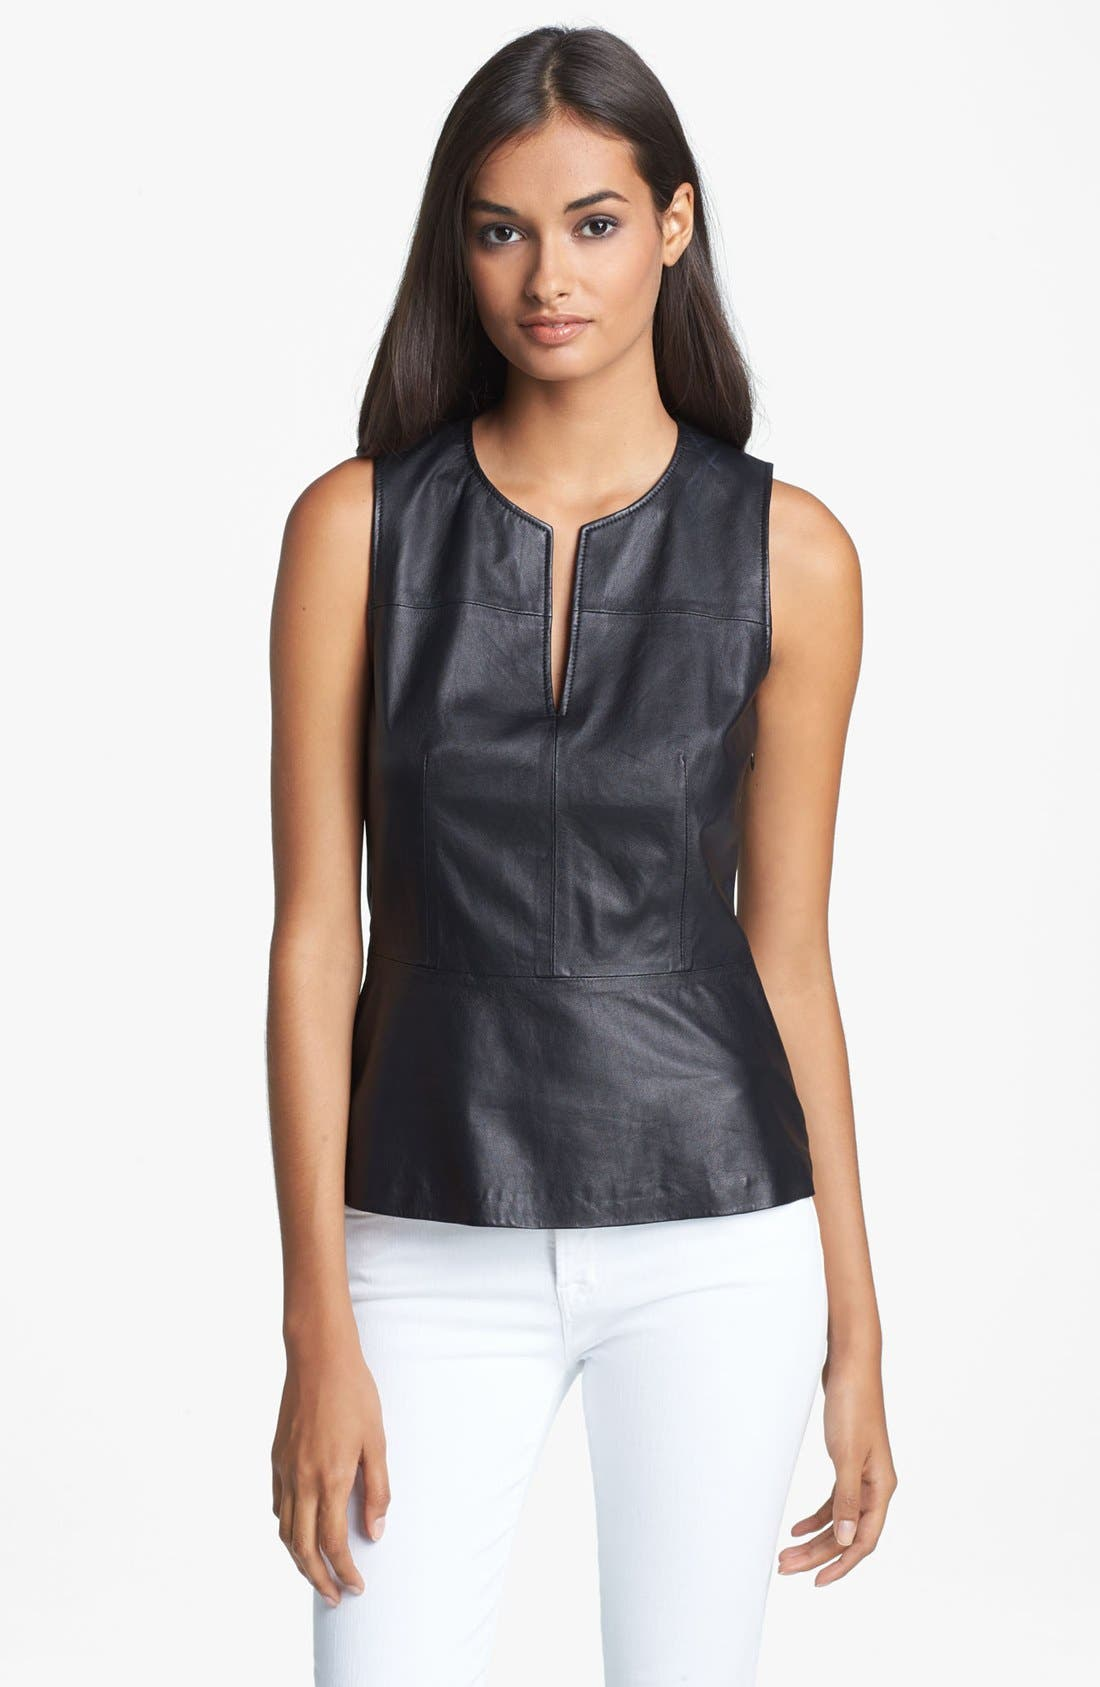 Alternate Image 1 Selected - Theory 'Etia L.' Leather Top